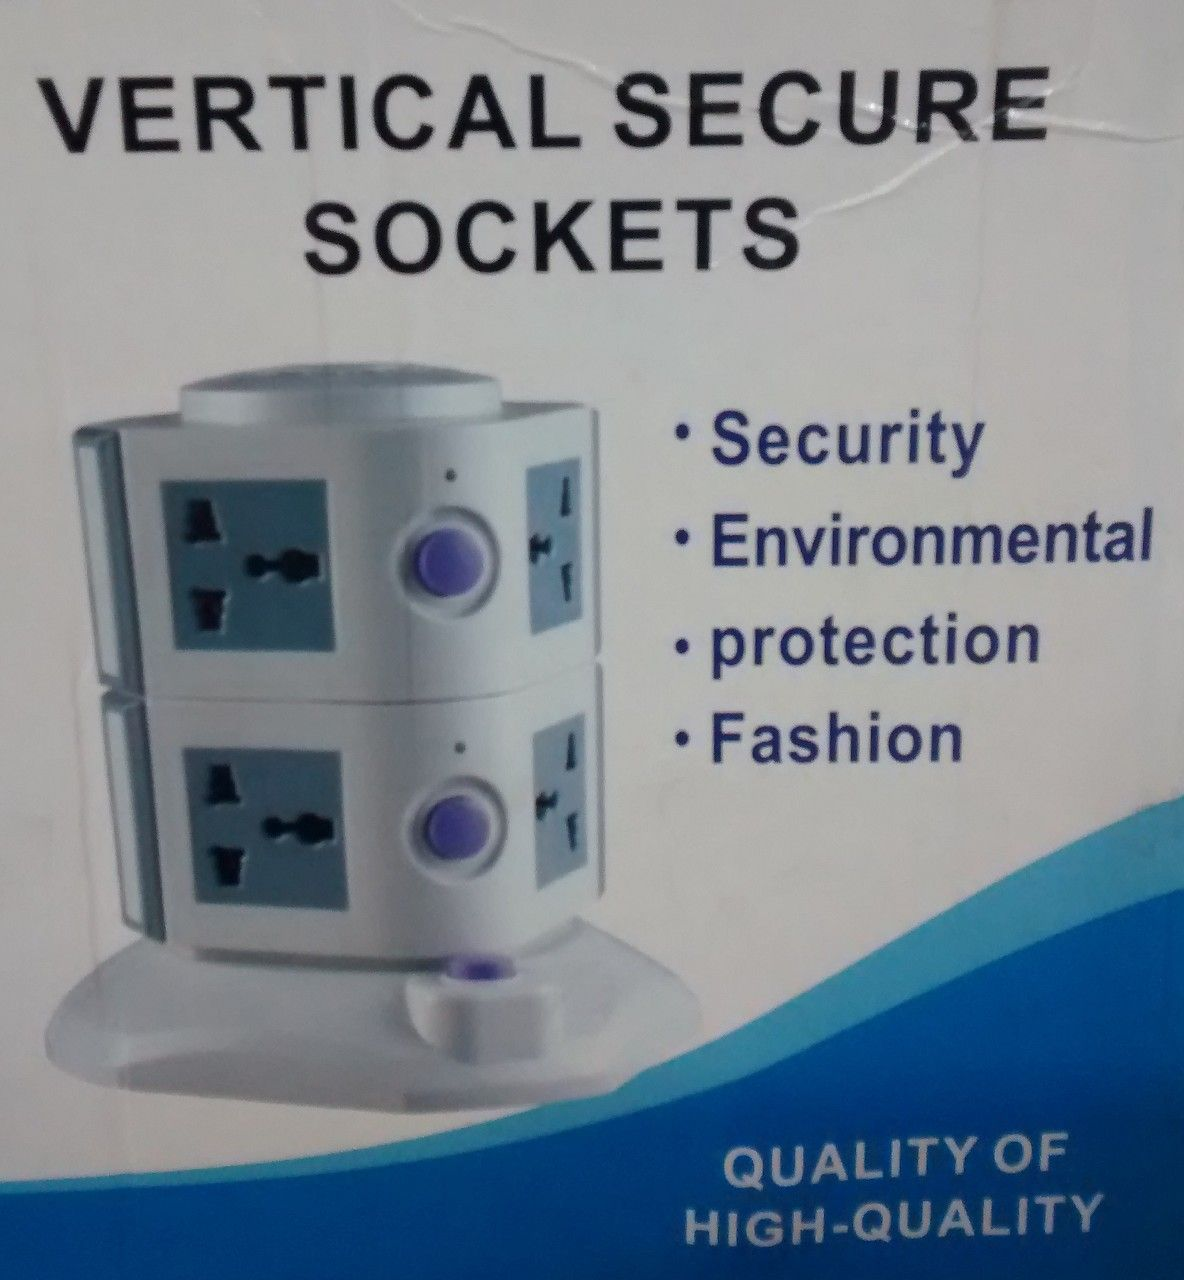 Security. Environmental. Protection. Quality of High-Quality